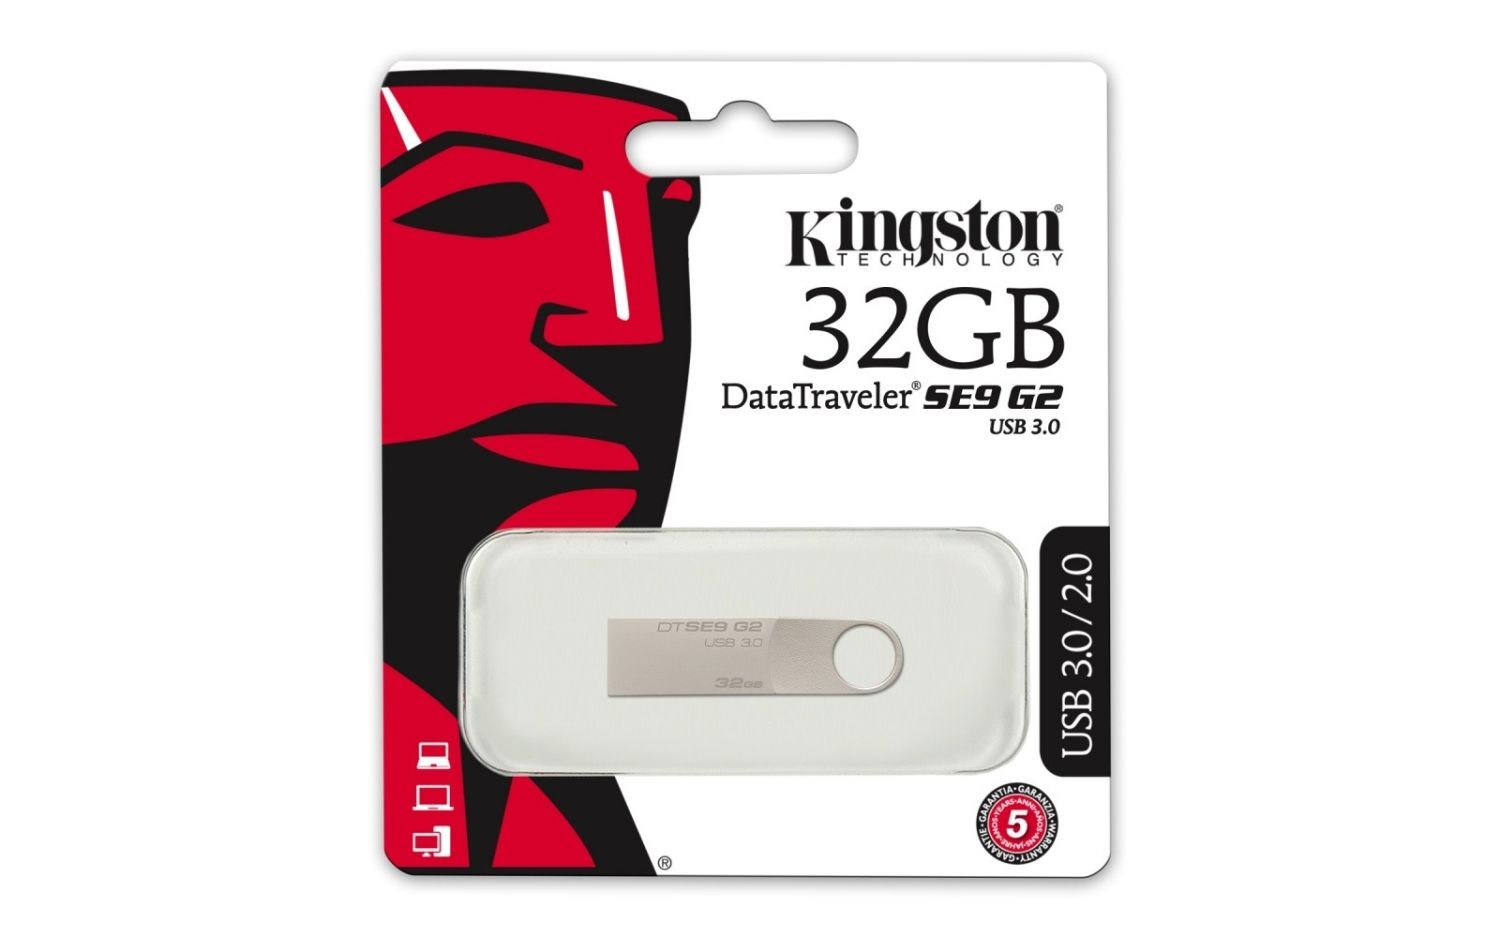 Kingston pamięć USB 32GB USB 3.0 DataTraveler SE9 G2 (Metal casing)